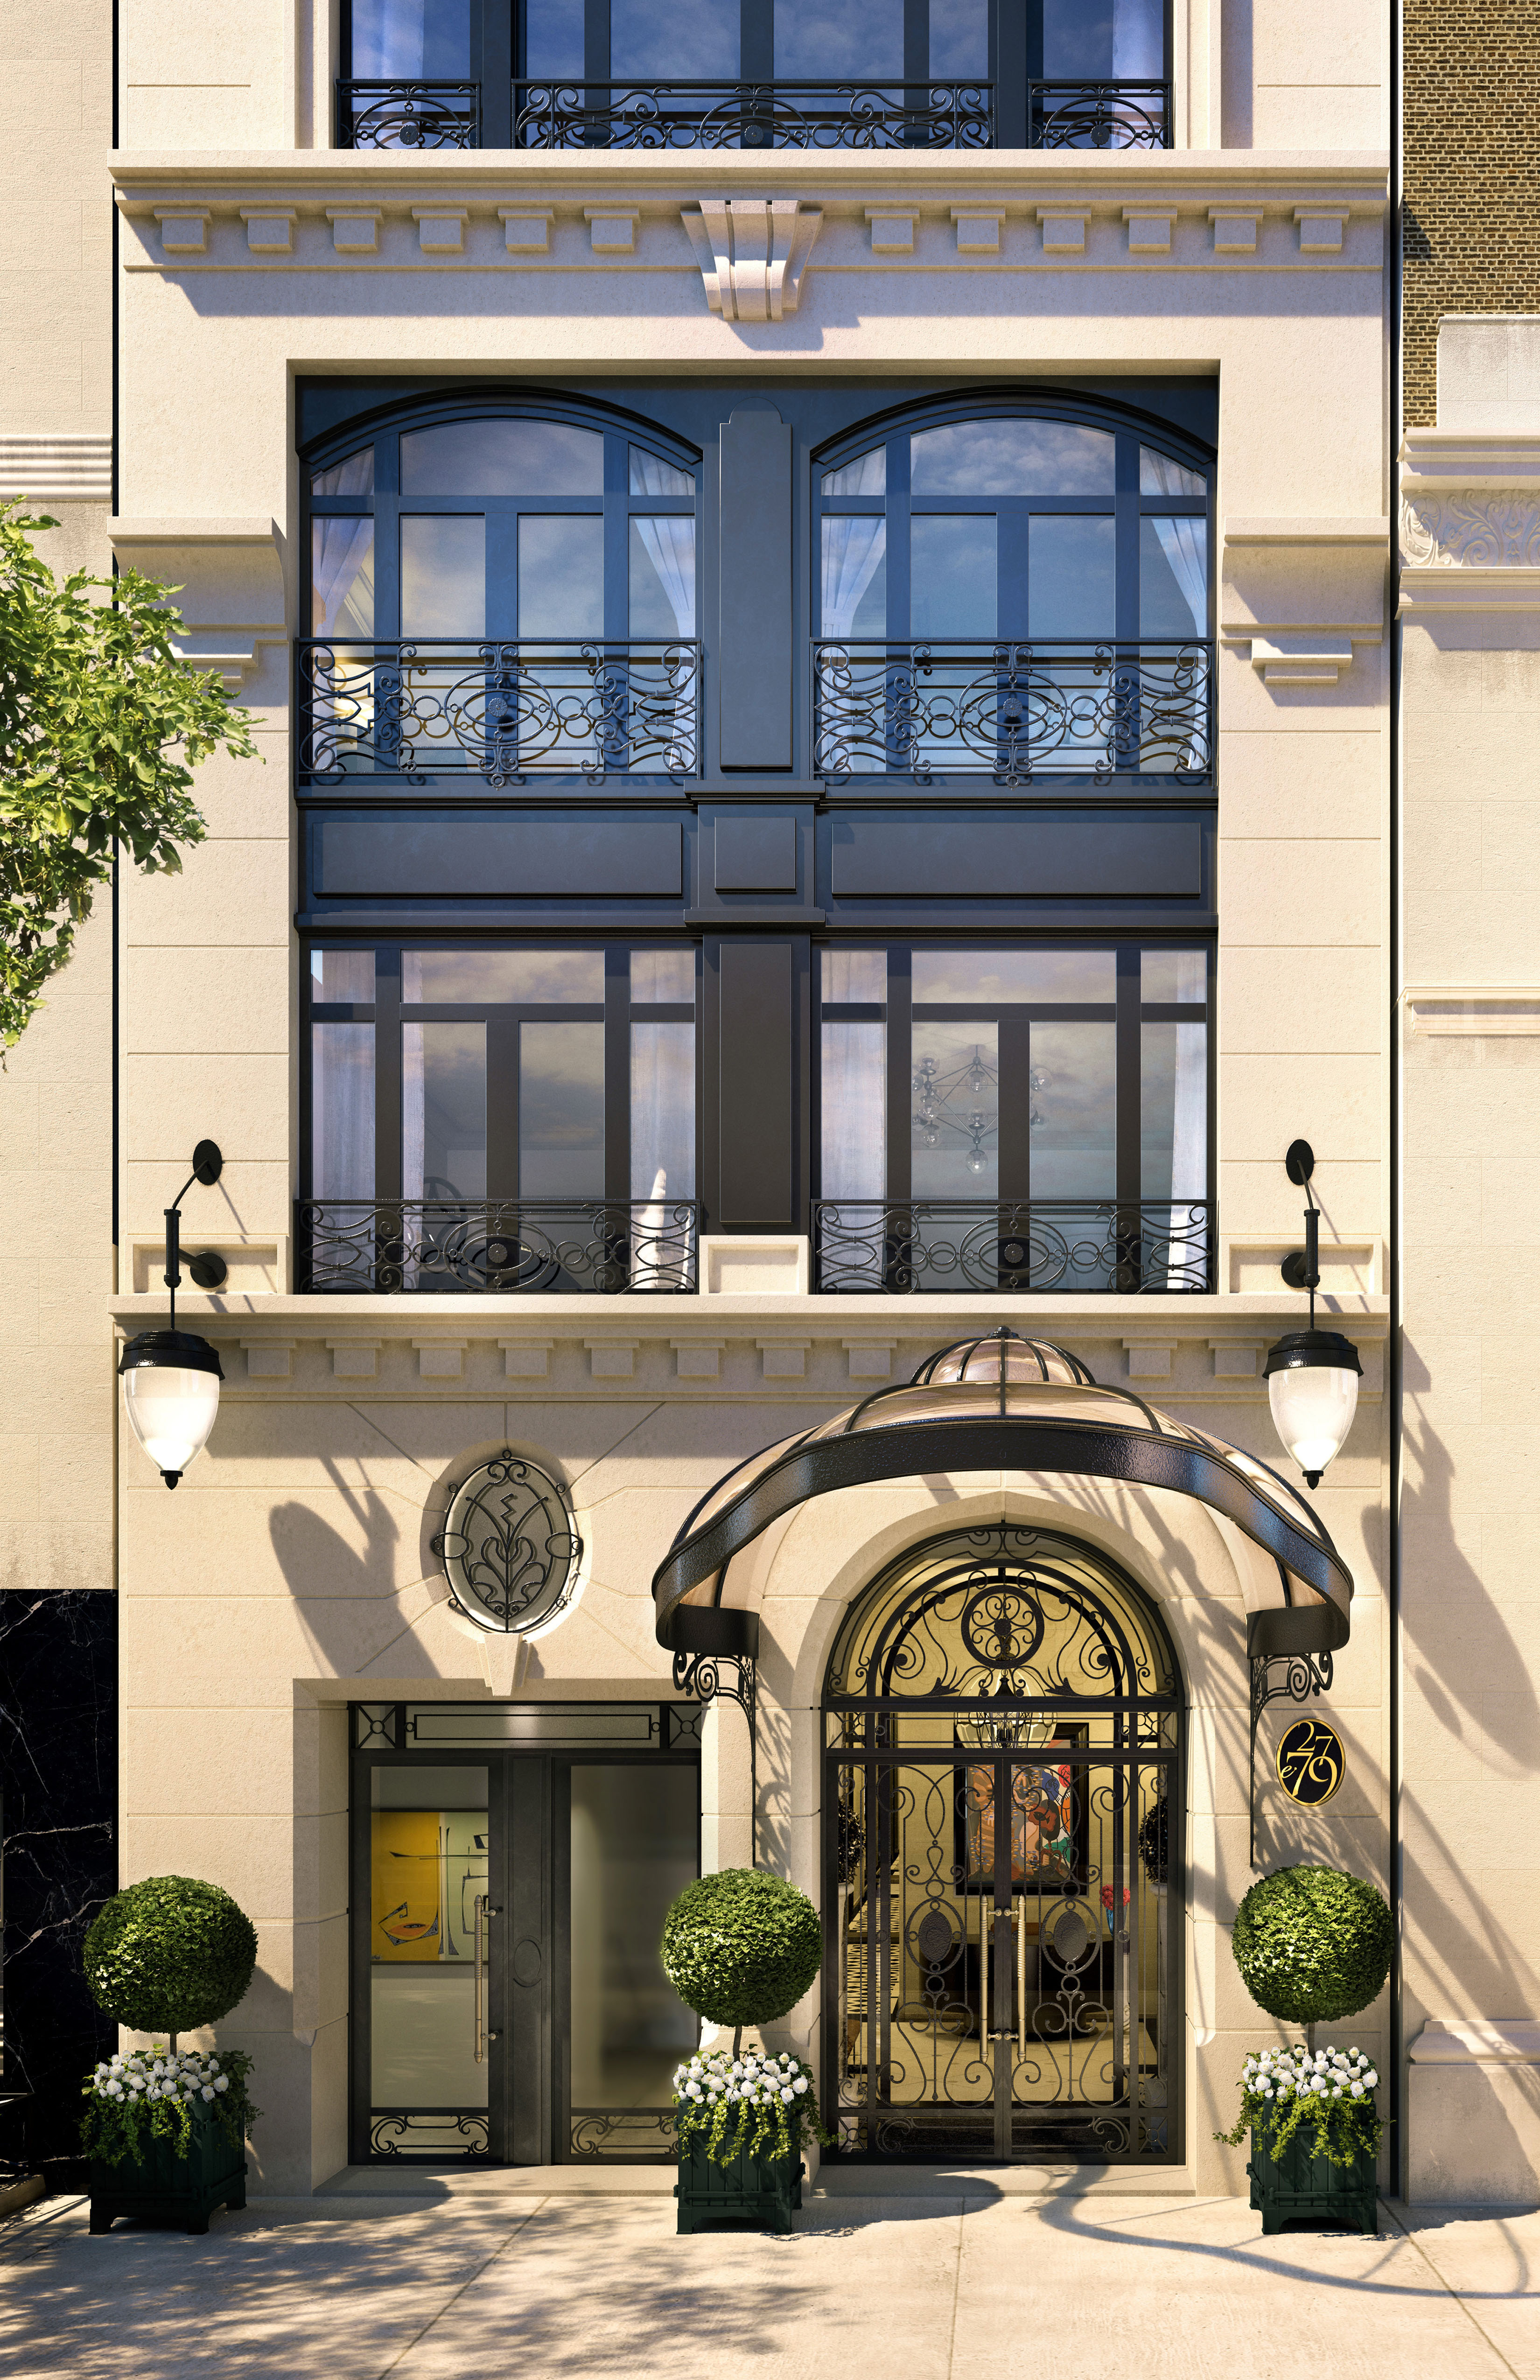 Upper East Side condo inspired by Parisian architecture launches sales from $5.25M